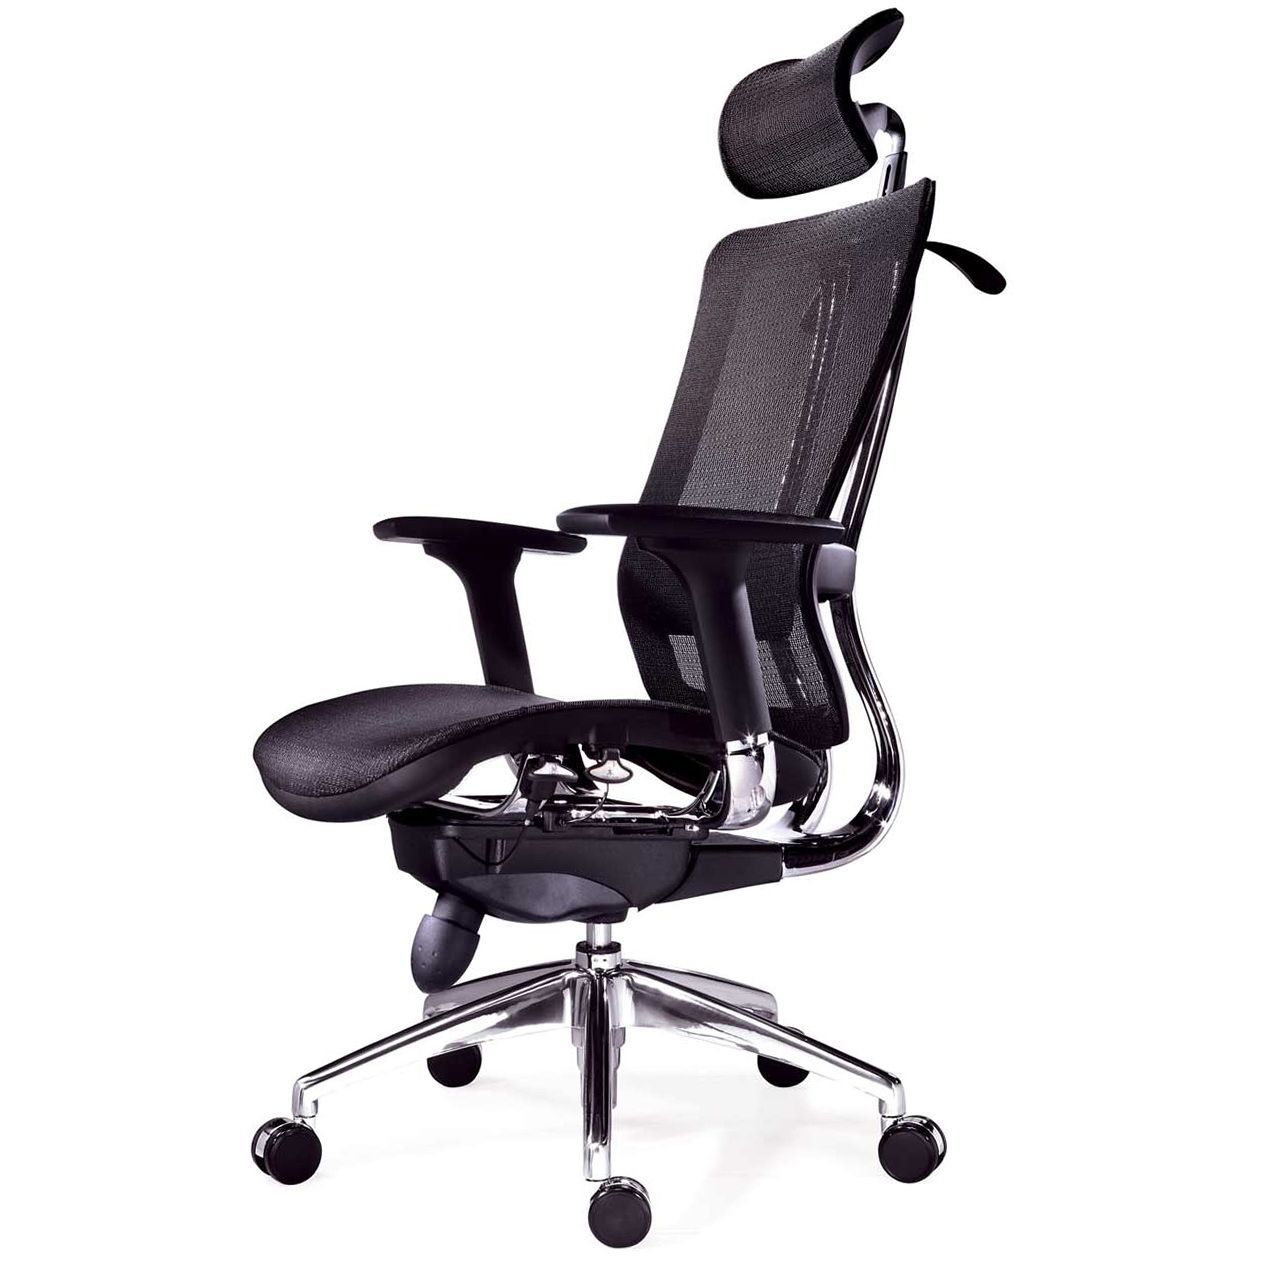 55 office chair bad back best home furniture check more at http